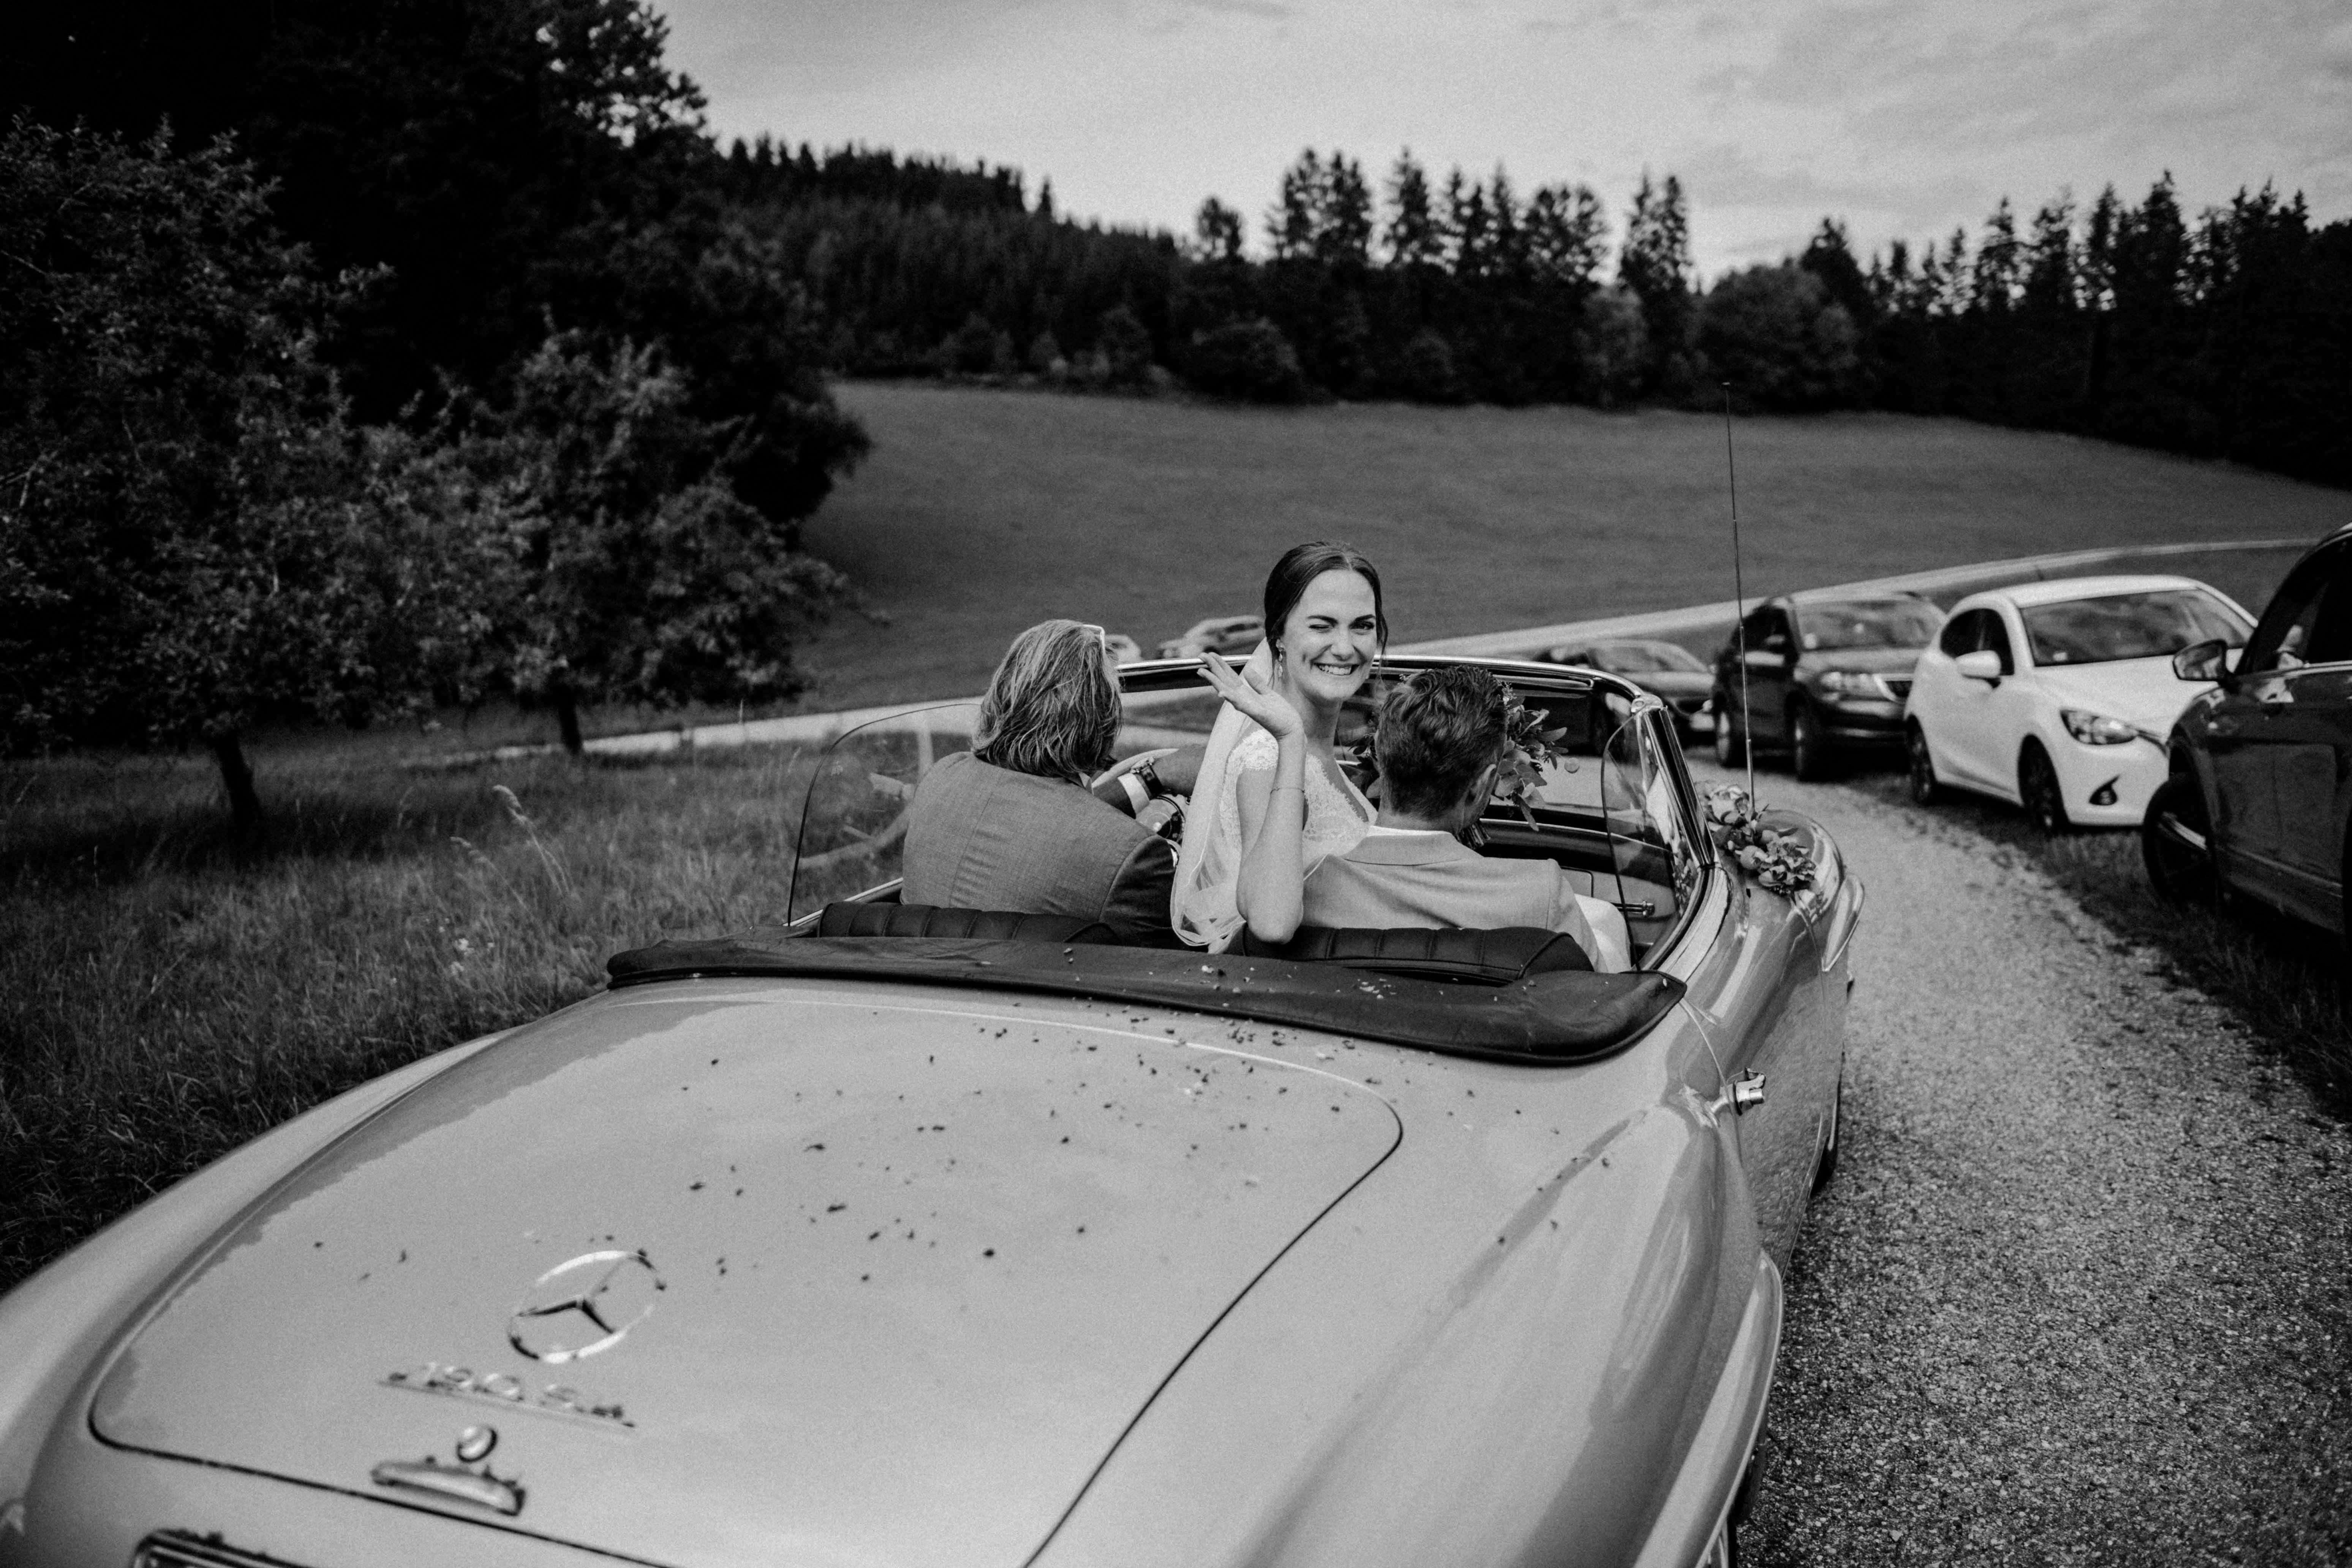 cabriolet mercedesstern sonja poehlmann photography couples muenchen bayern